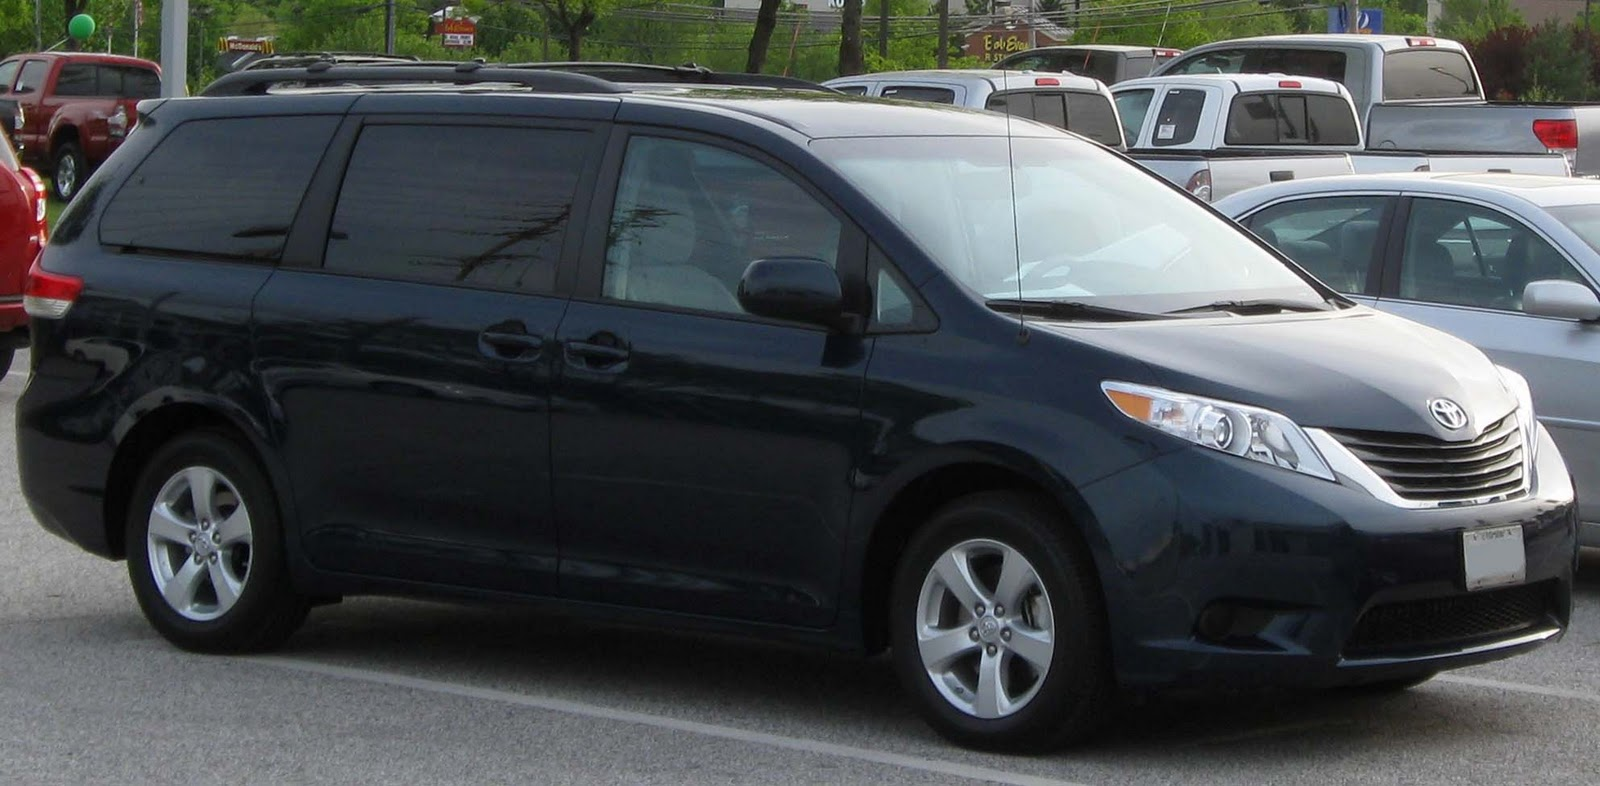 Audi Sport Cars Toyota Sienna Cars Information Gallery